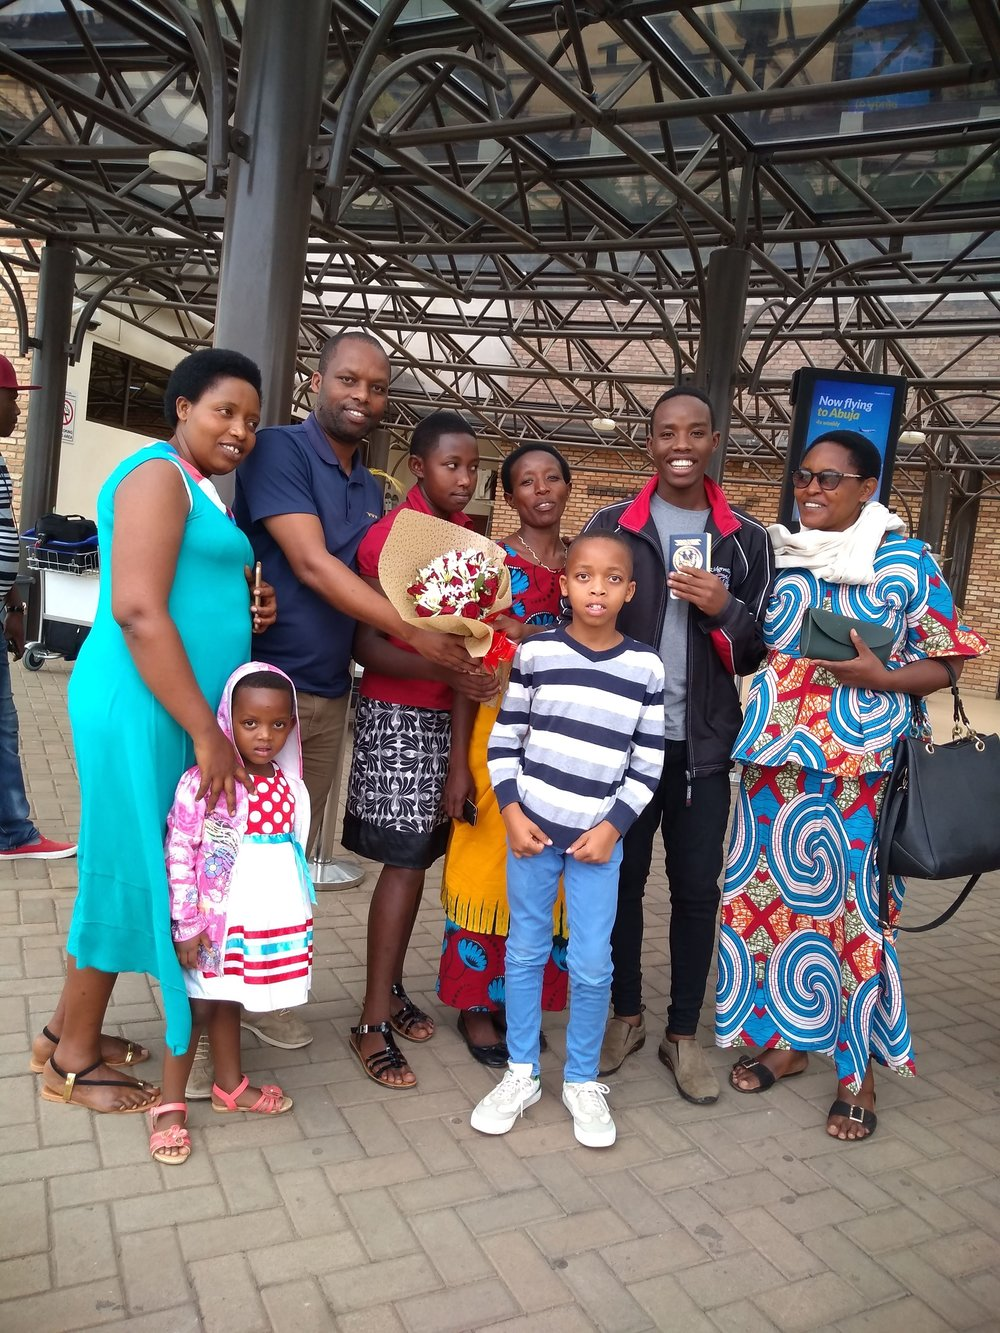 Above, Fils reunited with his ASYV family mama and biological family, with Theo, on arriving back to Rwanda.